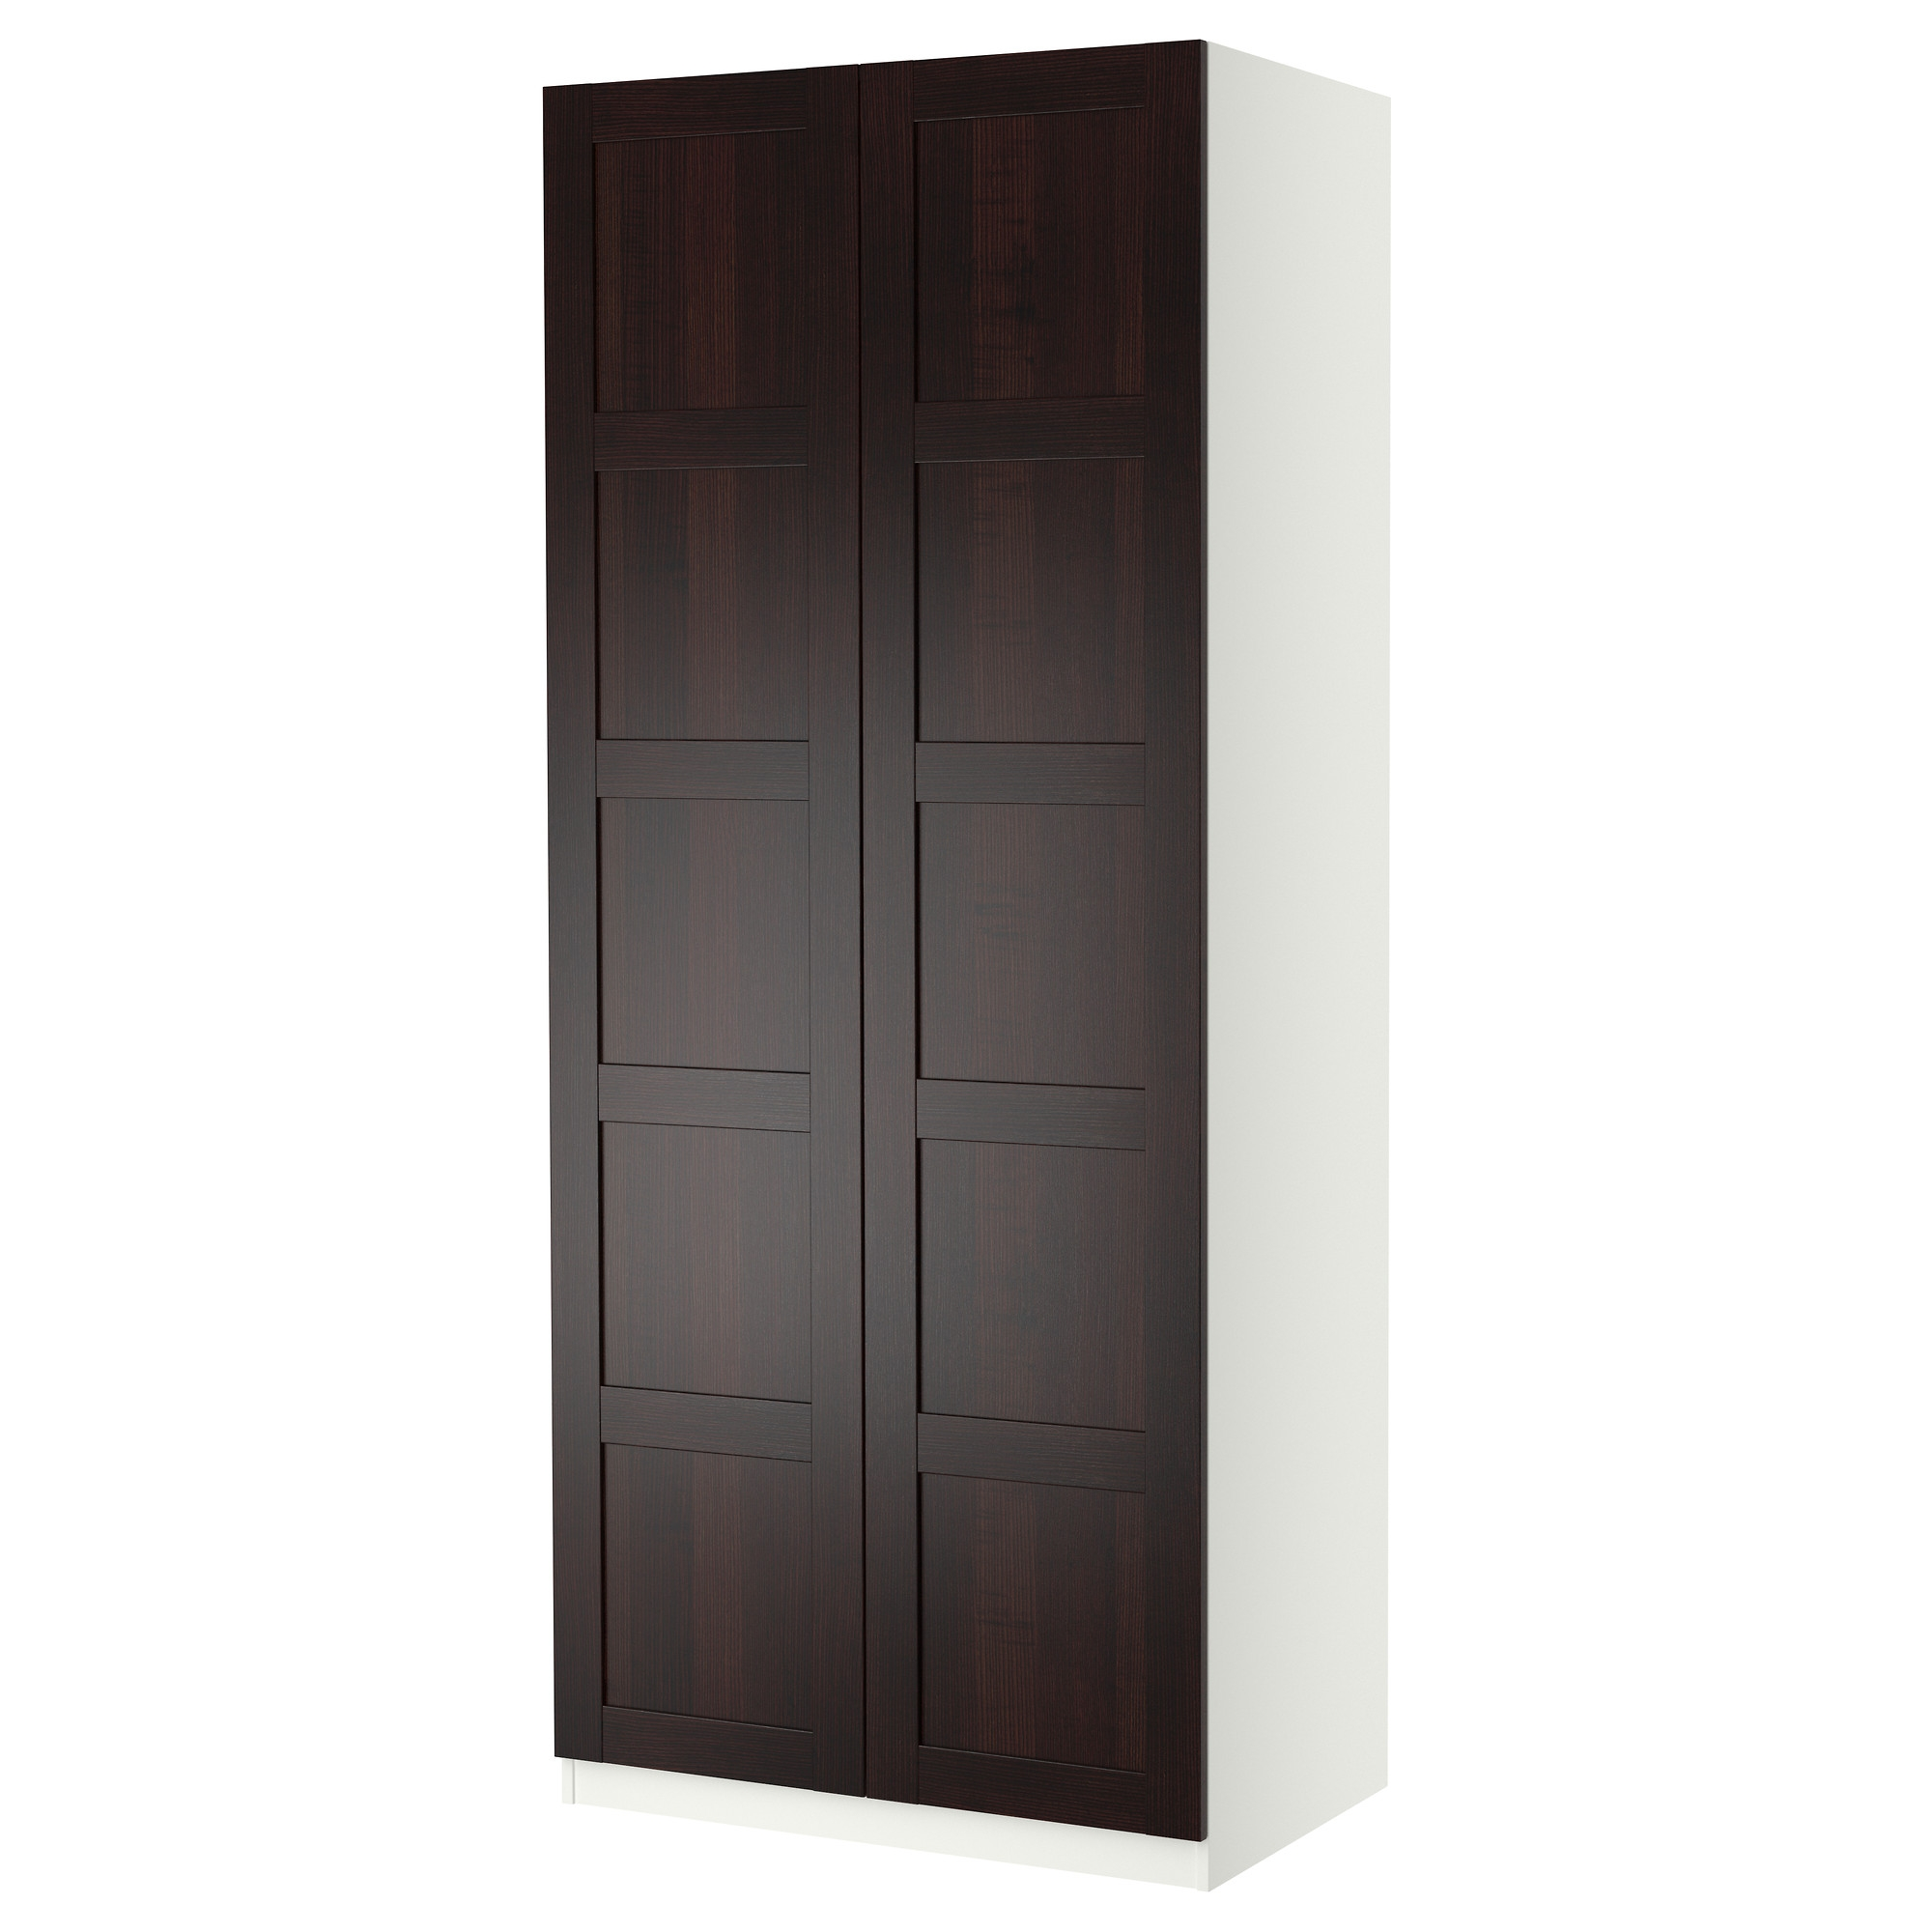 pax wardrobe with 2 doors. Black Bedroom Furniture Sets. Home Design Ideas